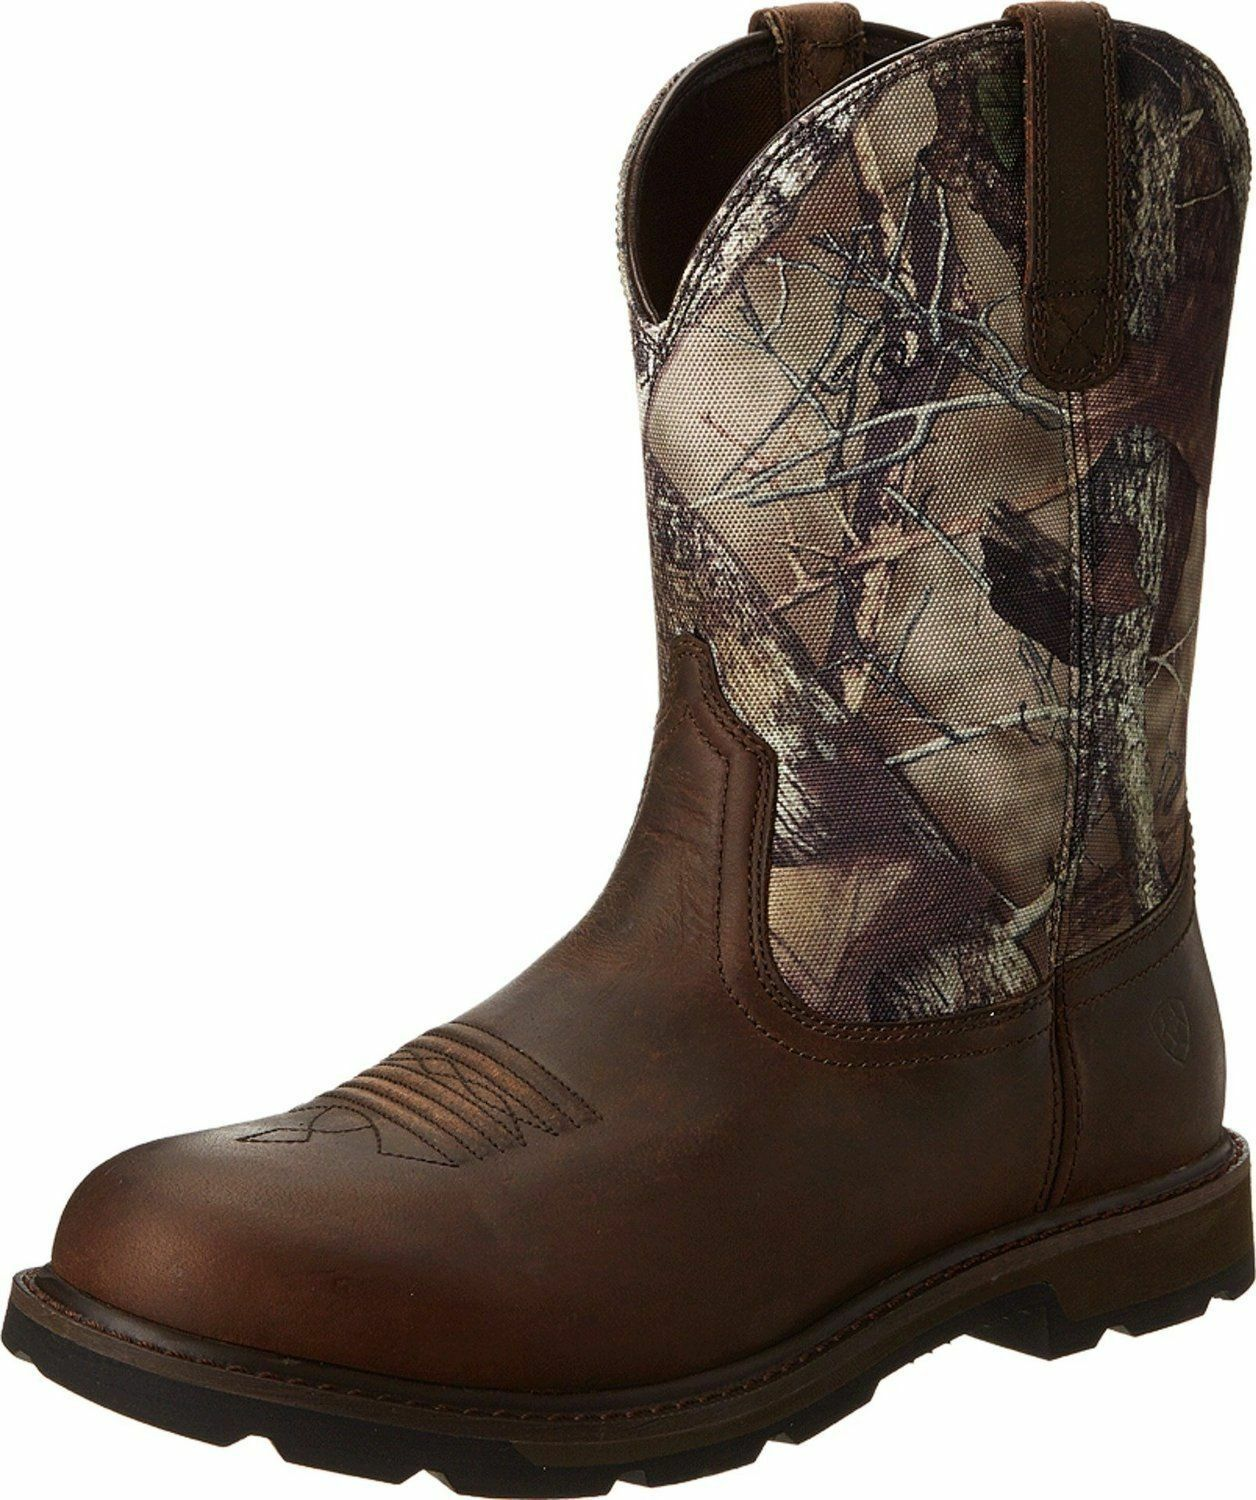 Ariat Men's Groundbreak Camo Steel Toe Work Safety Western Boots 10014246